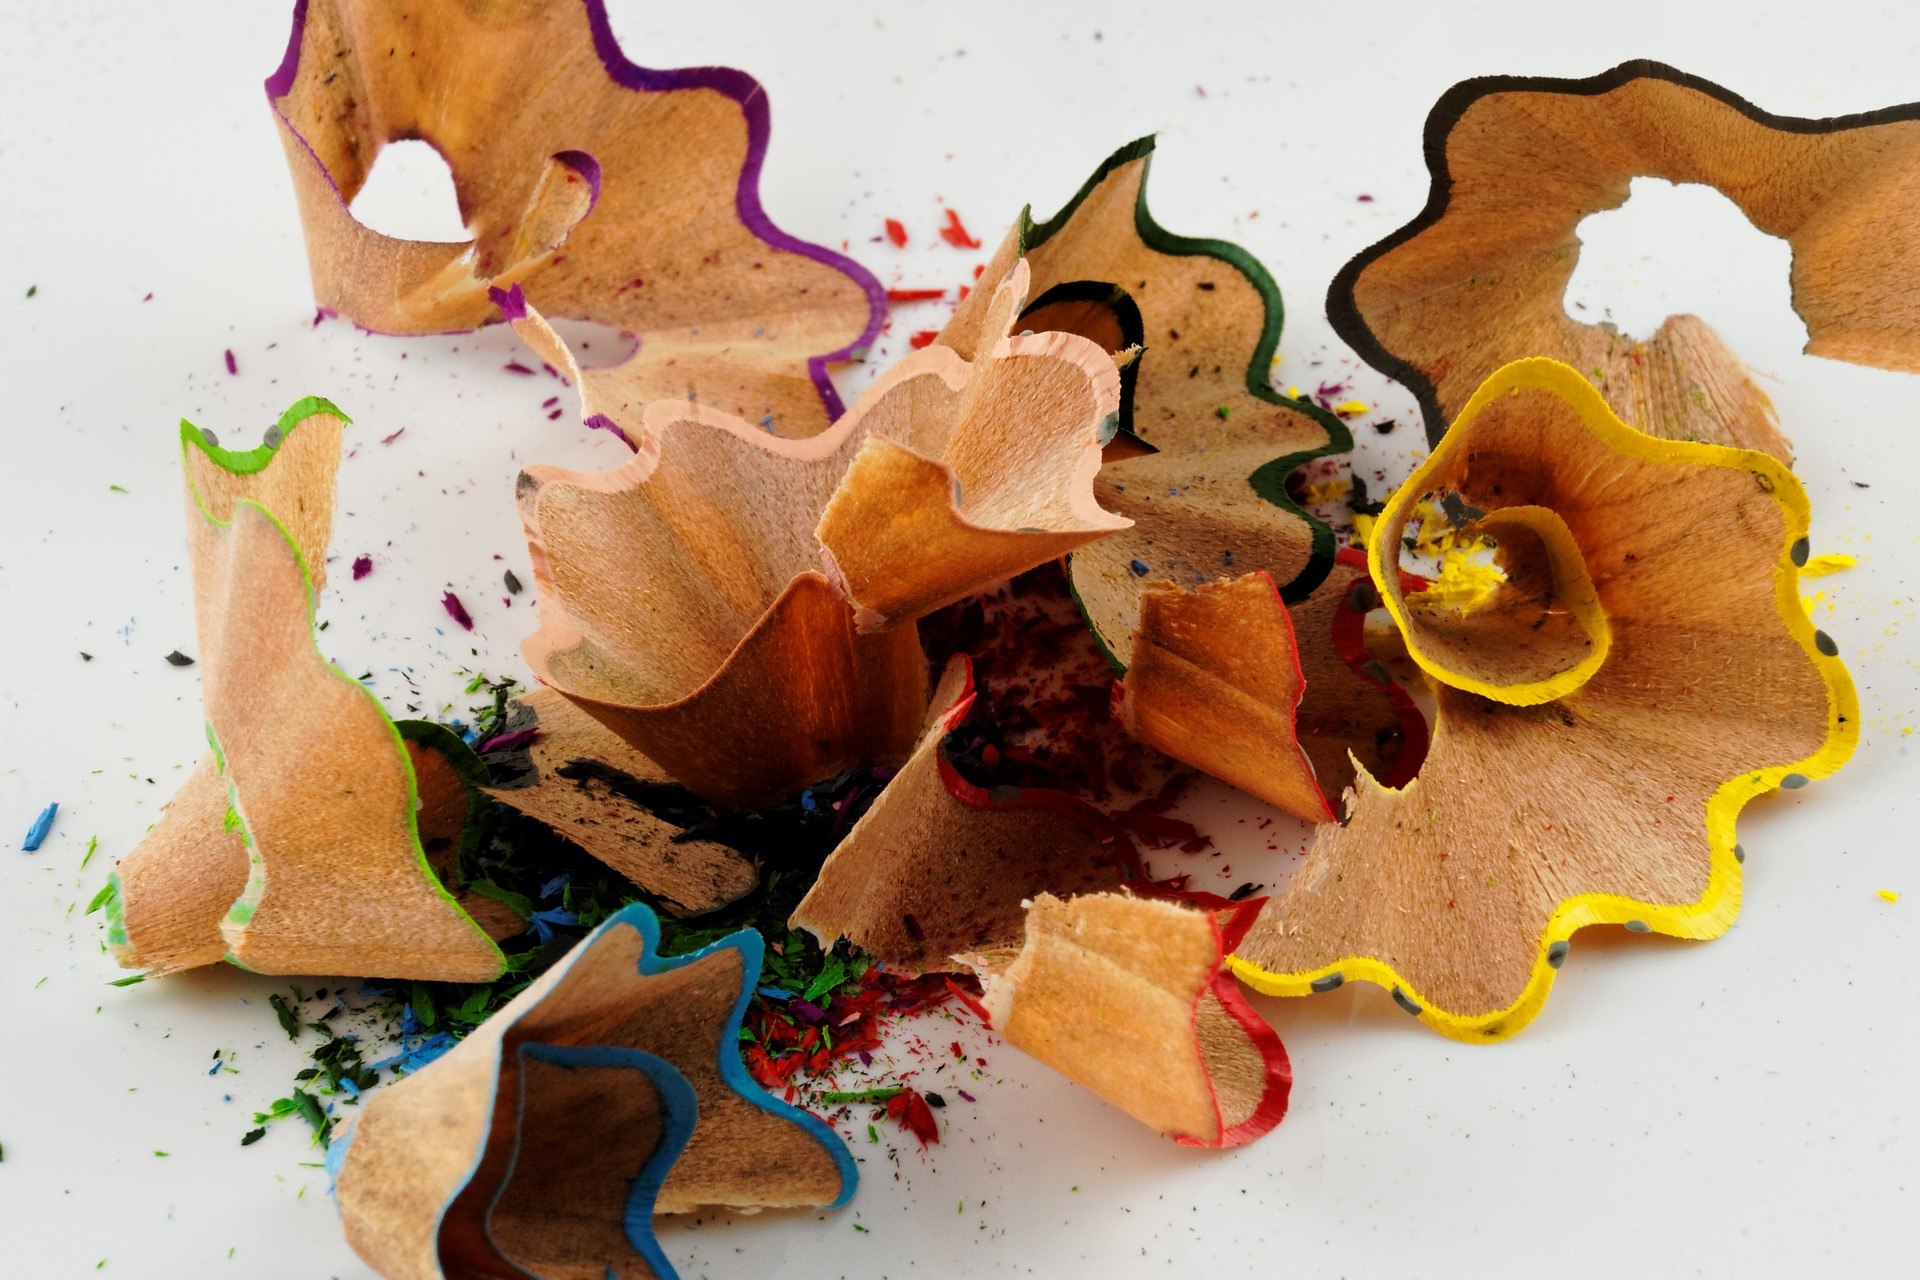 pencil shavings from free-writing